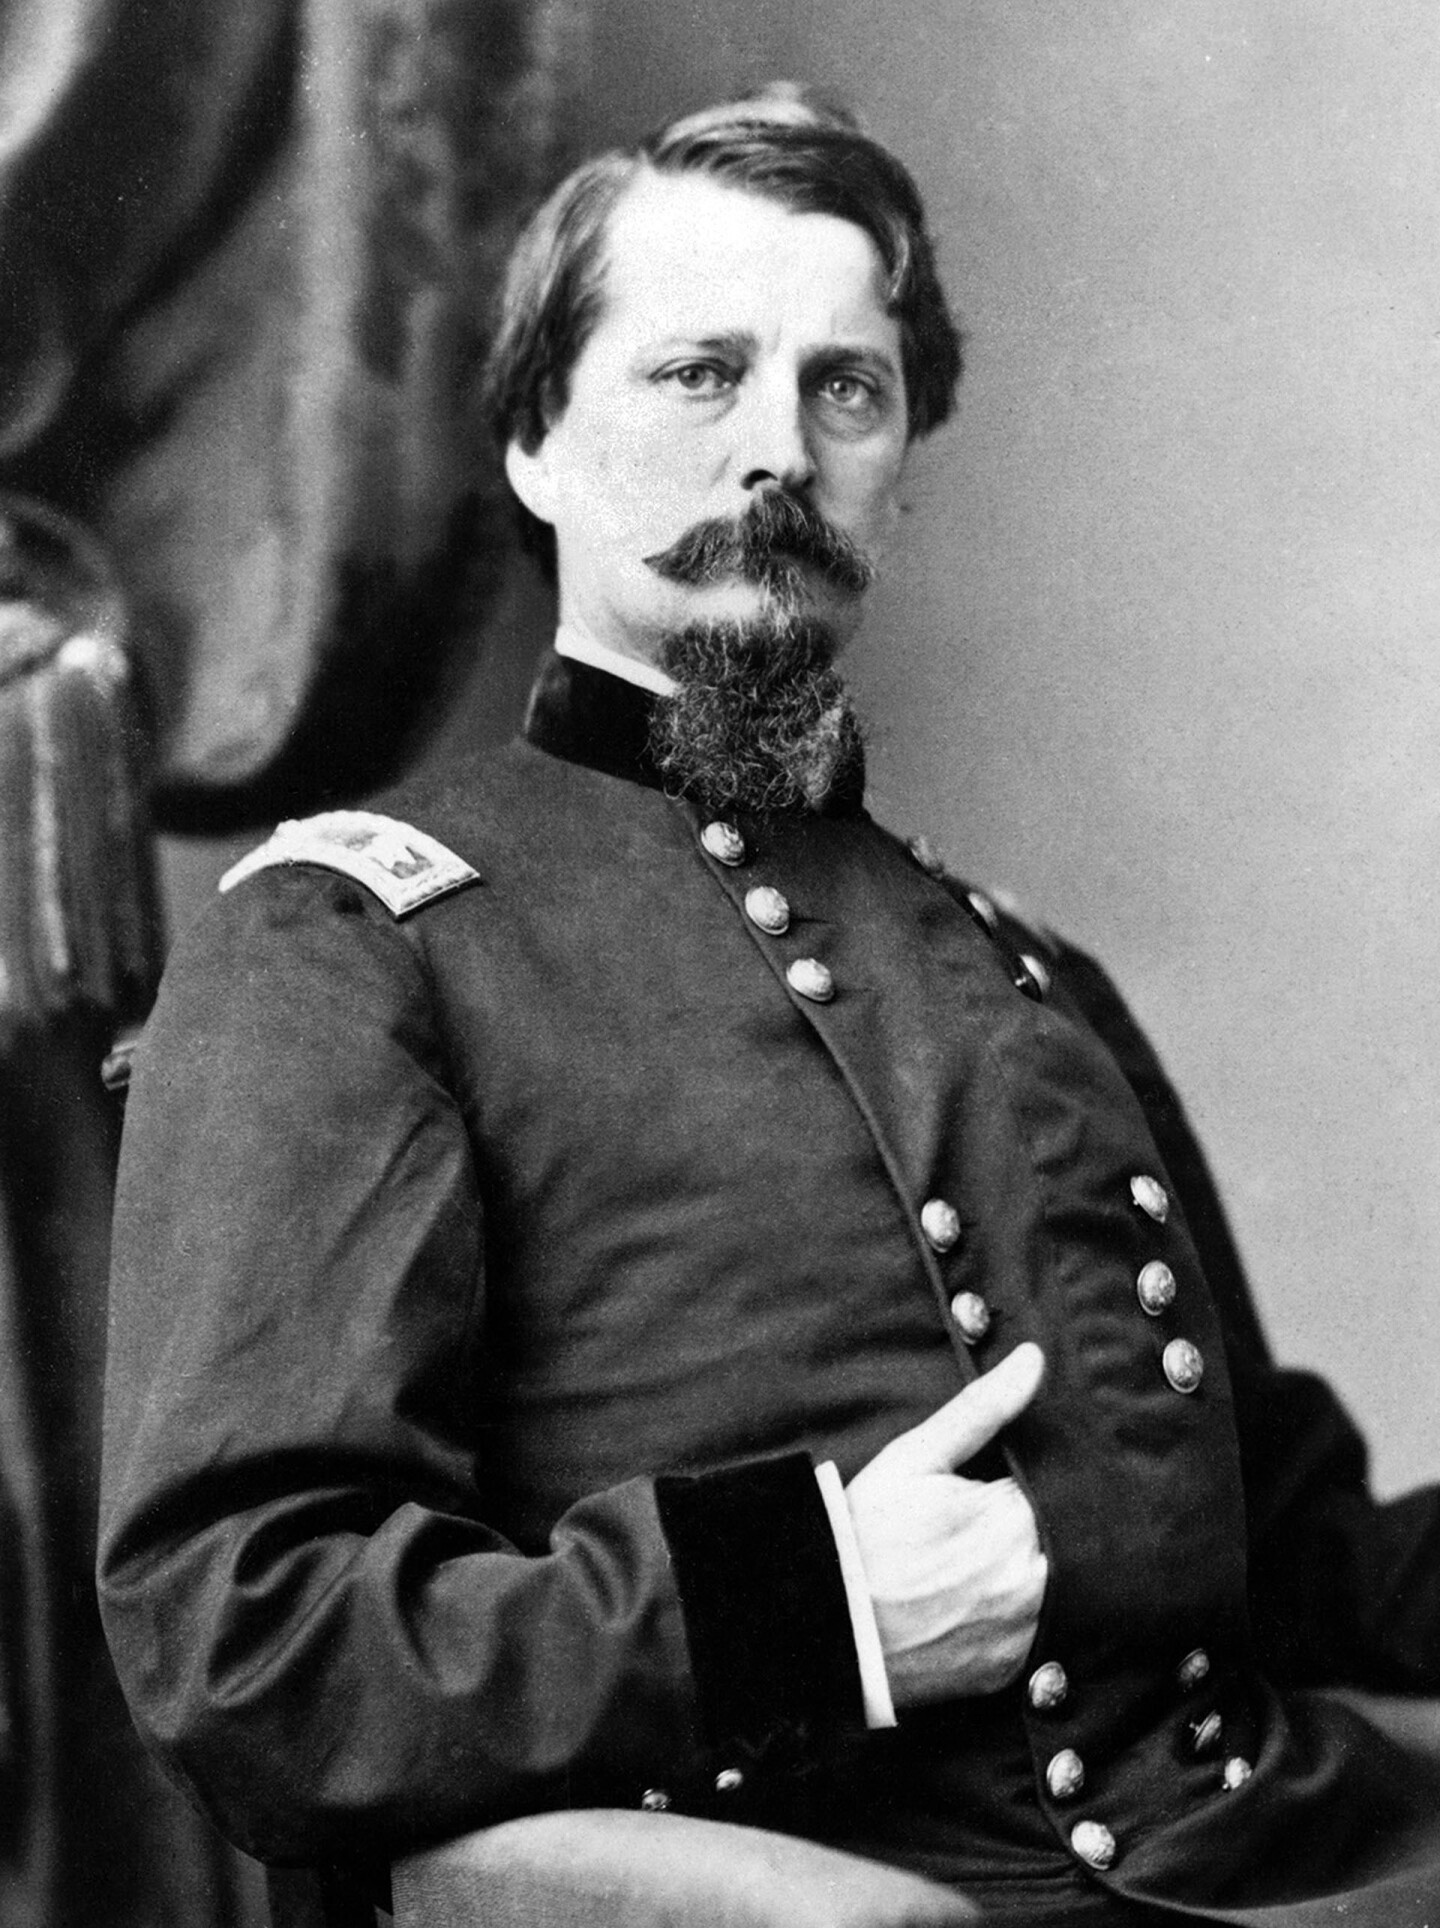 Winfield Scott Hancock. Hancock, like many Californians, did not favor abolition, but he would fight to preserve the Union. Photograph from Wikimedia